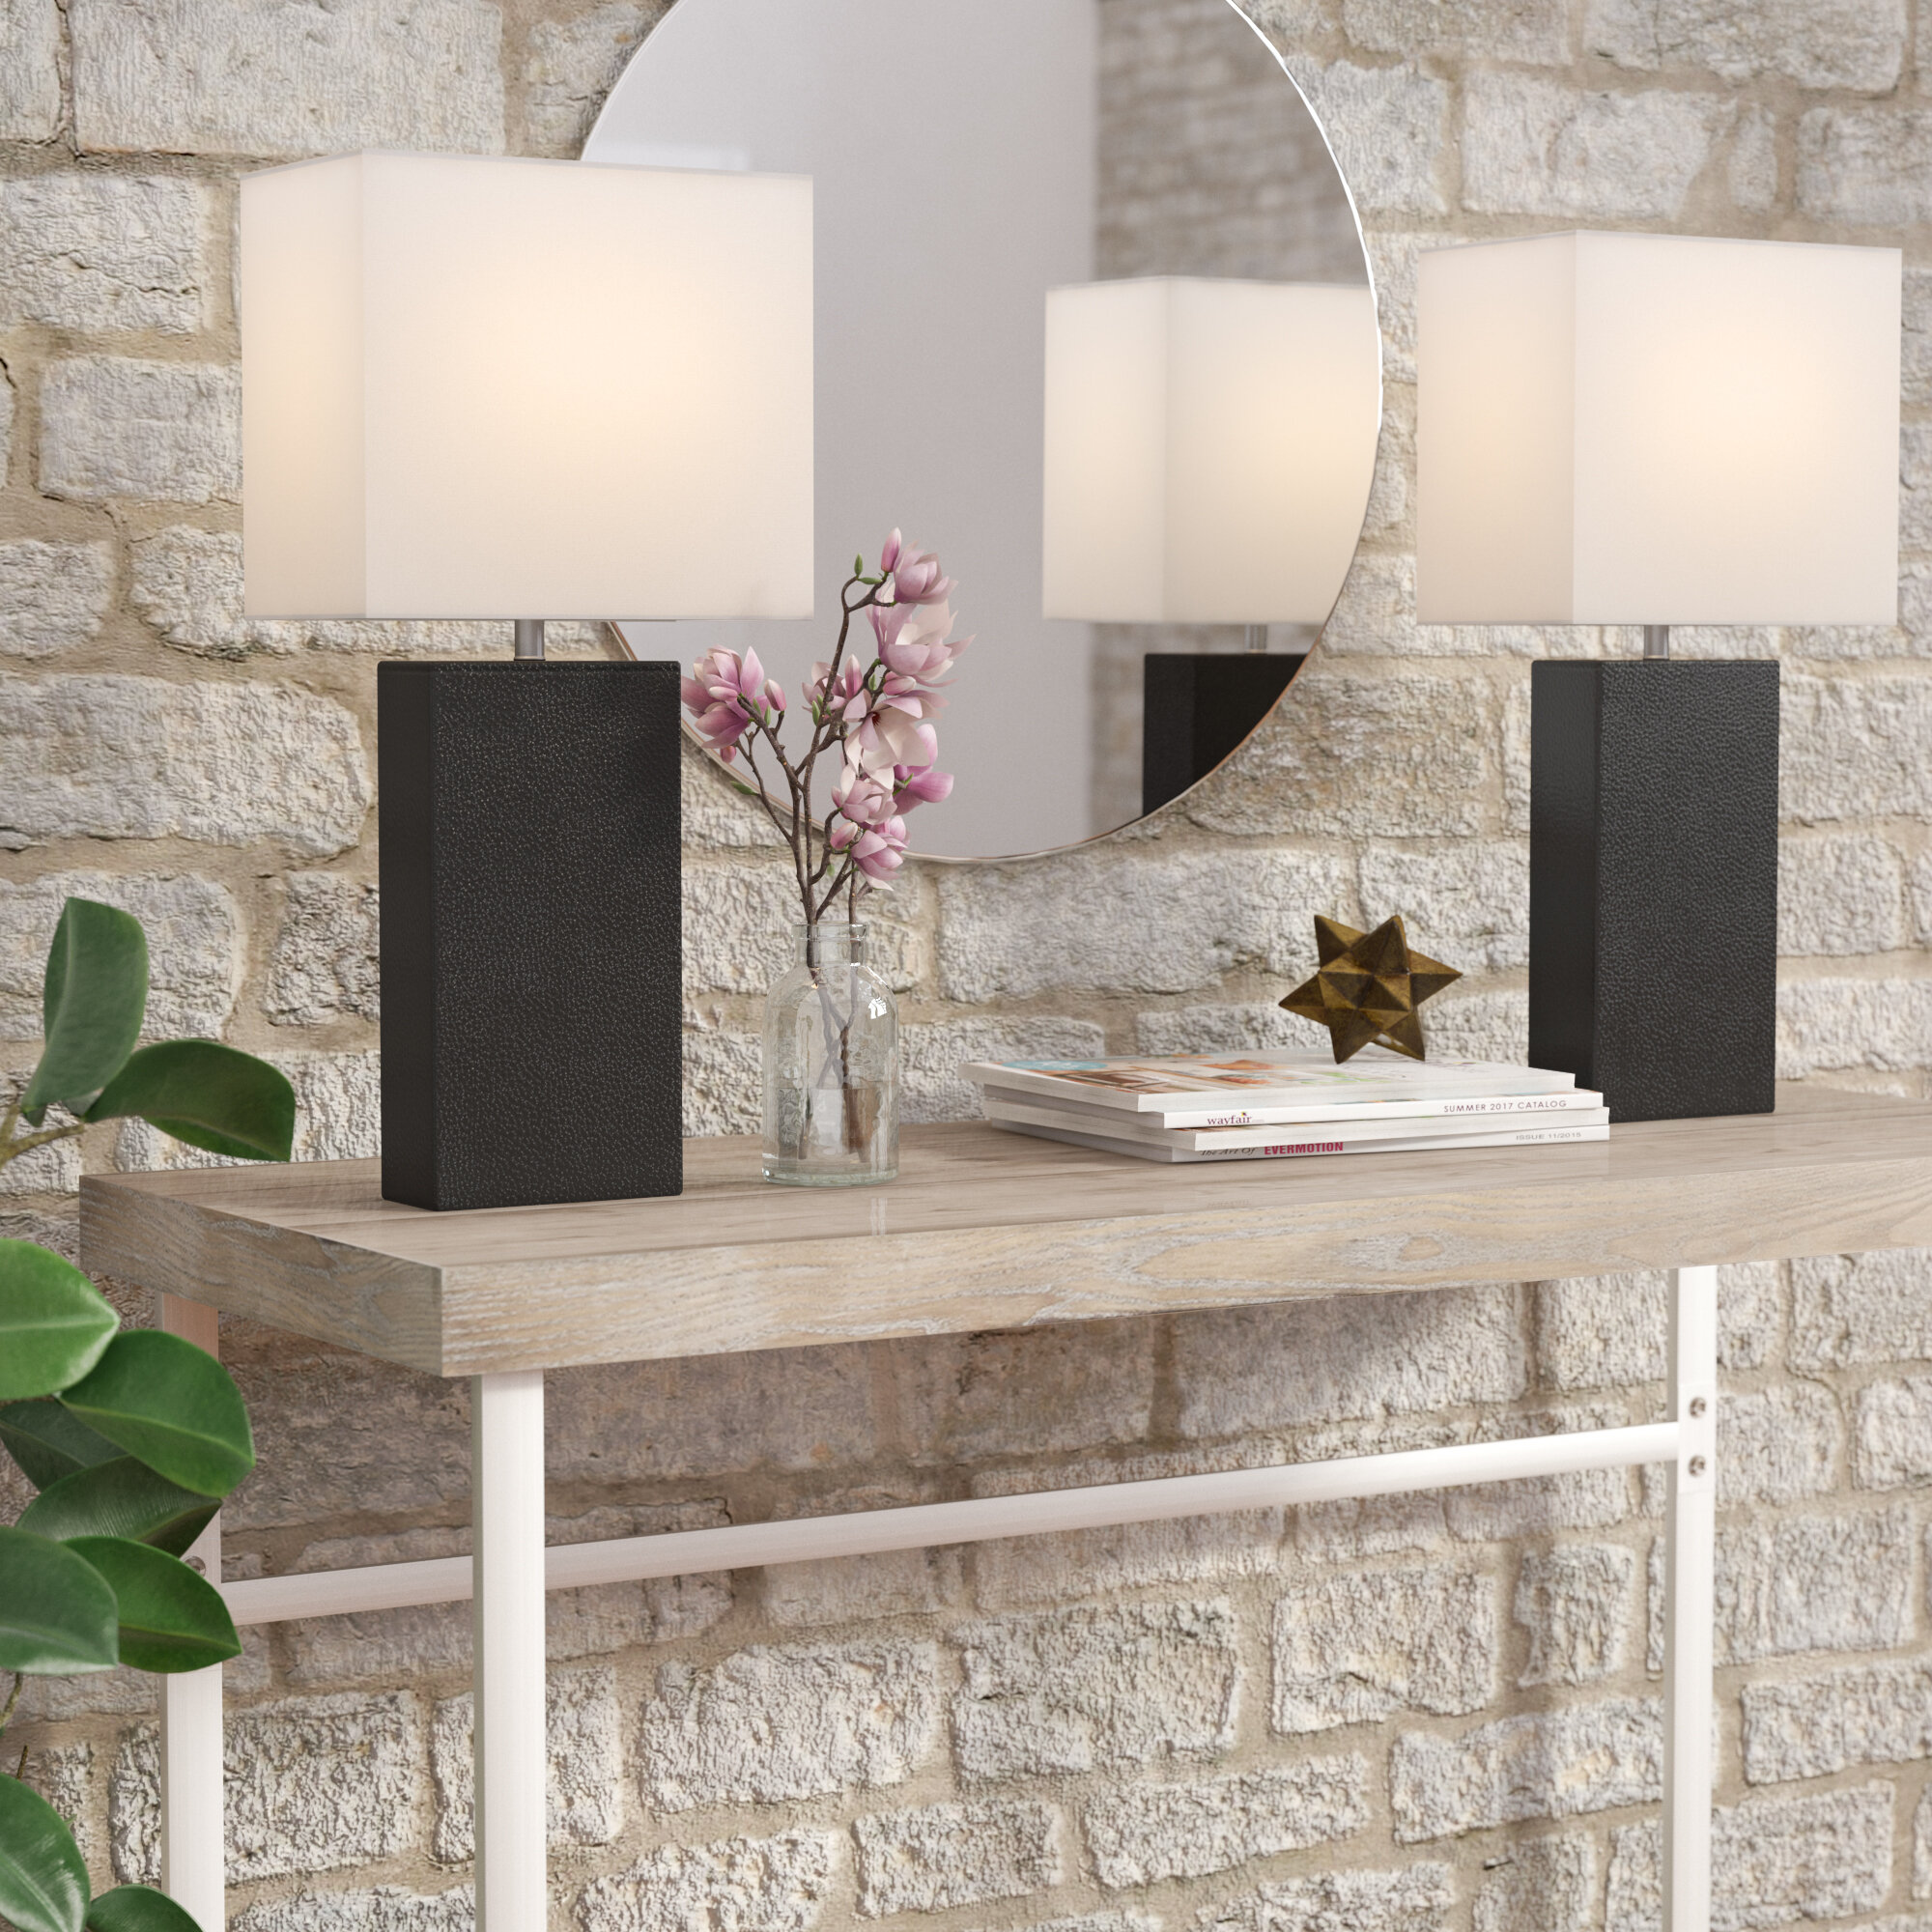 Cheap Table Lamps For Living Room - Table Design Ideas